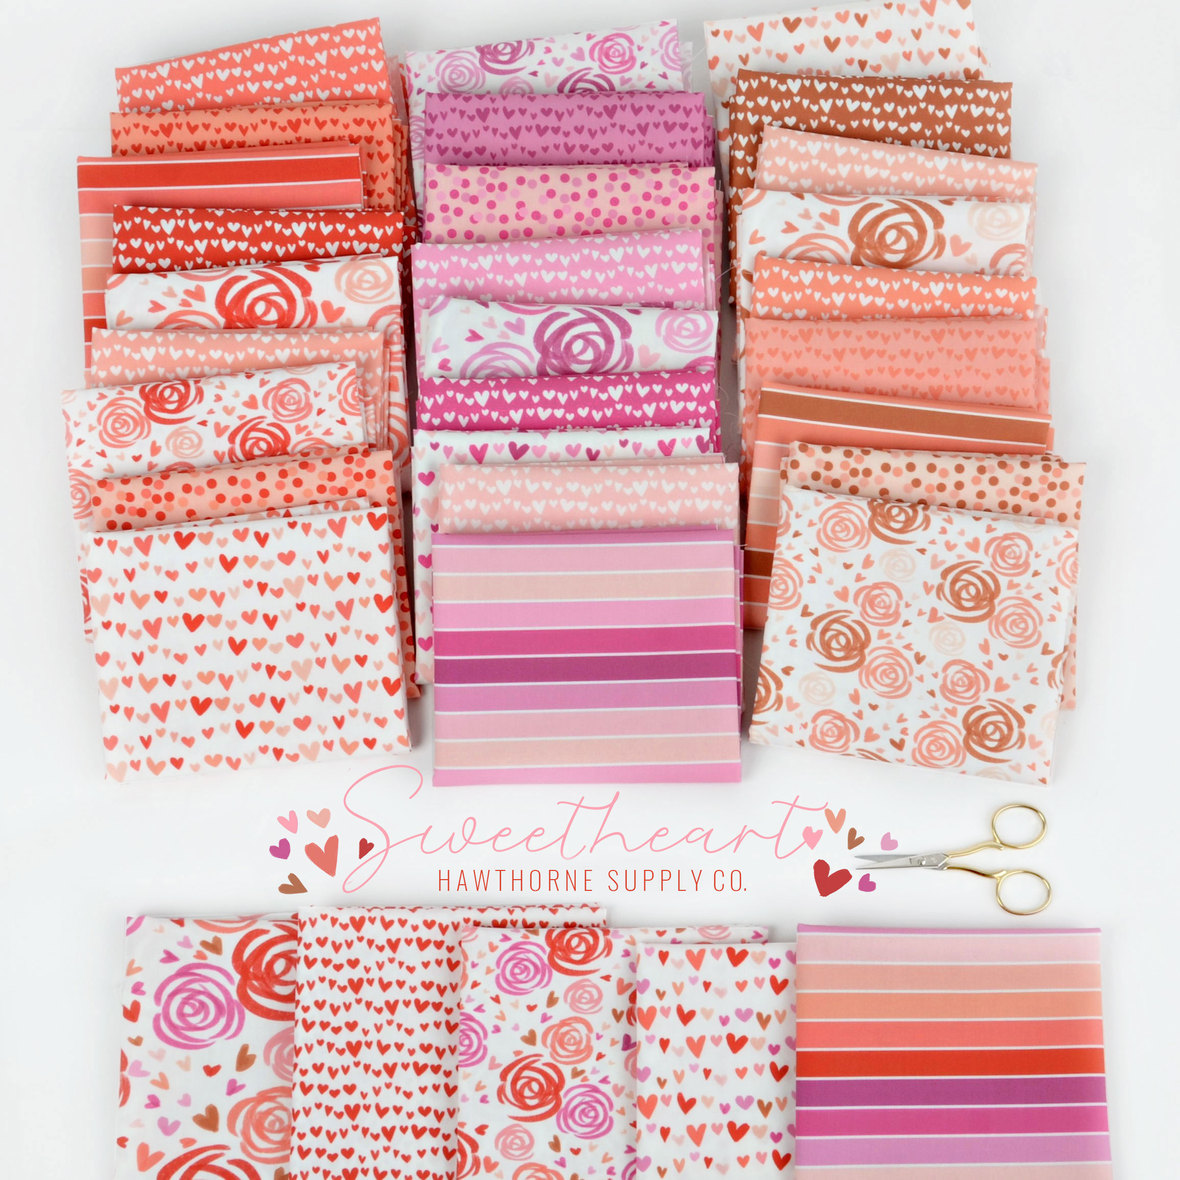 New-Sweetheart-Valentines-Day-Fabric-Hawthorne-Supply-Co